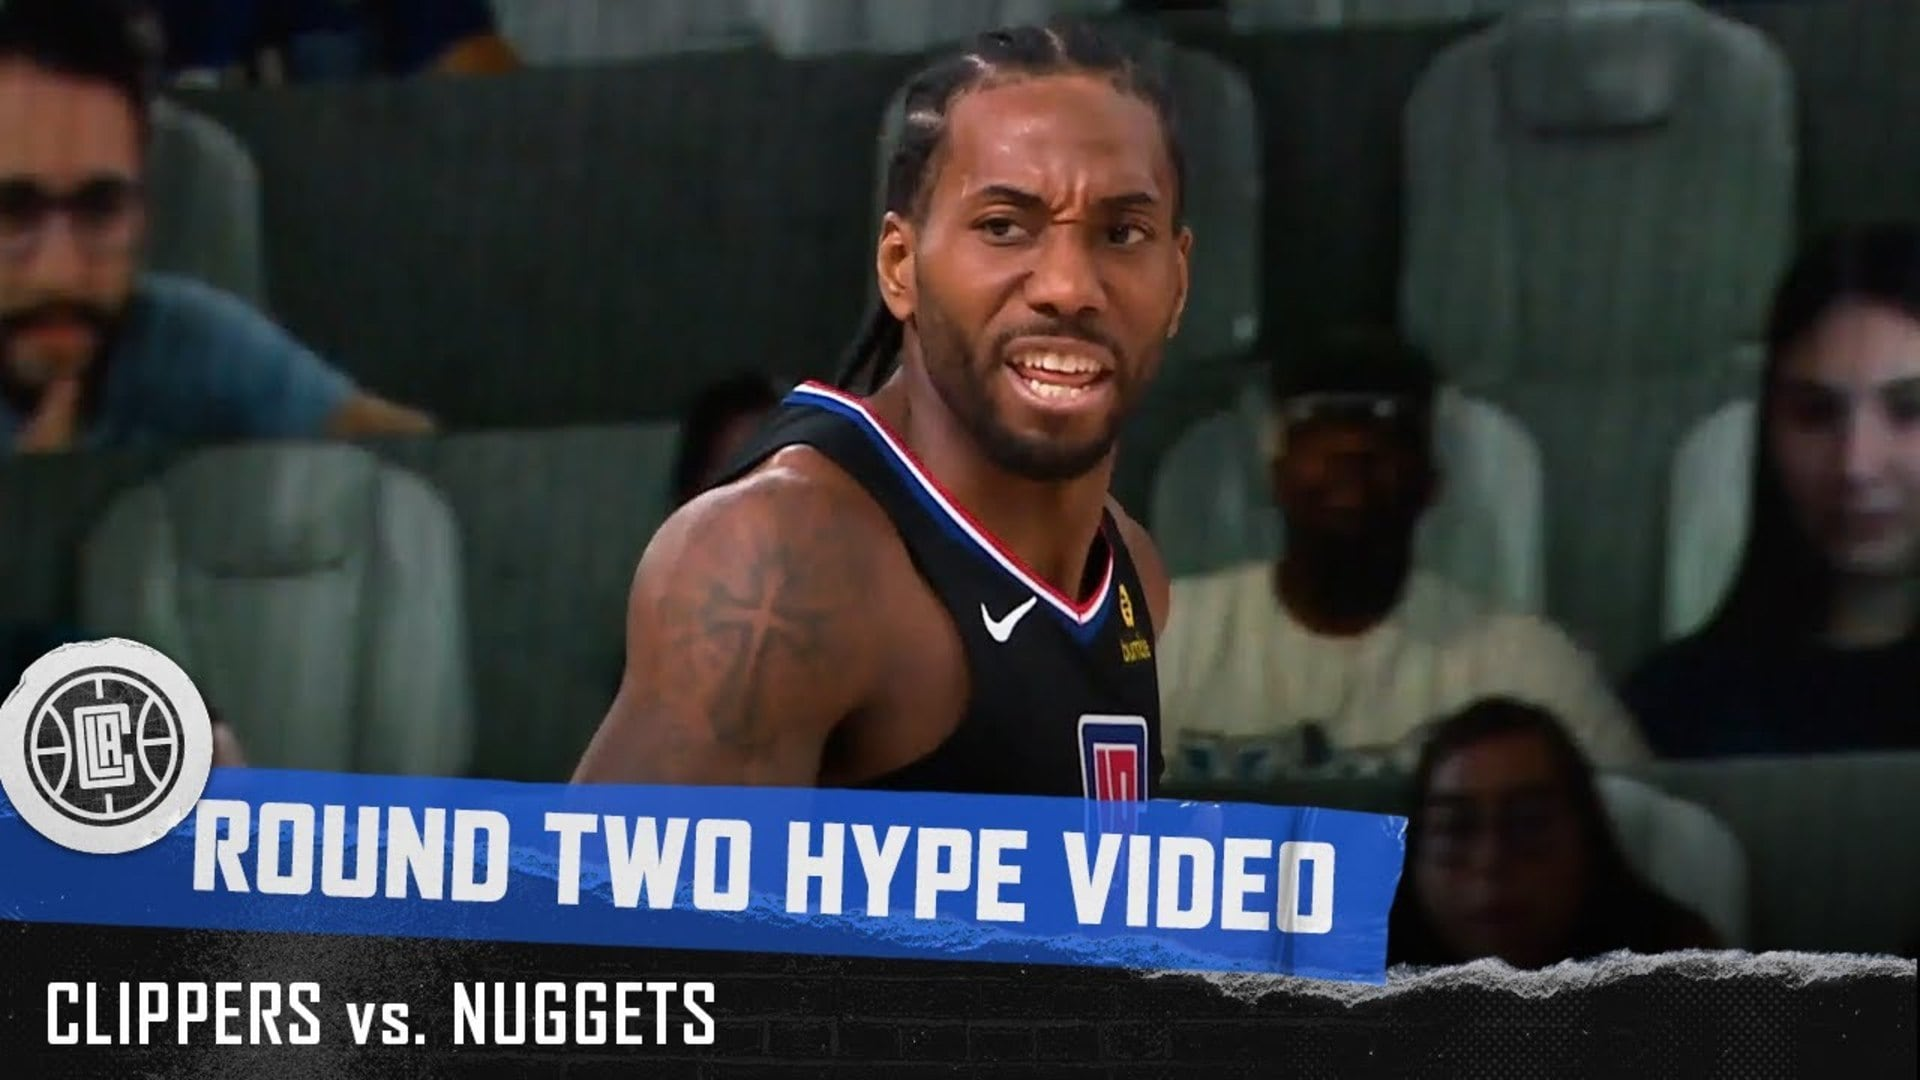 Clippers vs. Nuggets: Round Two Hype Video